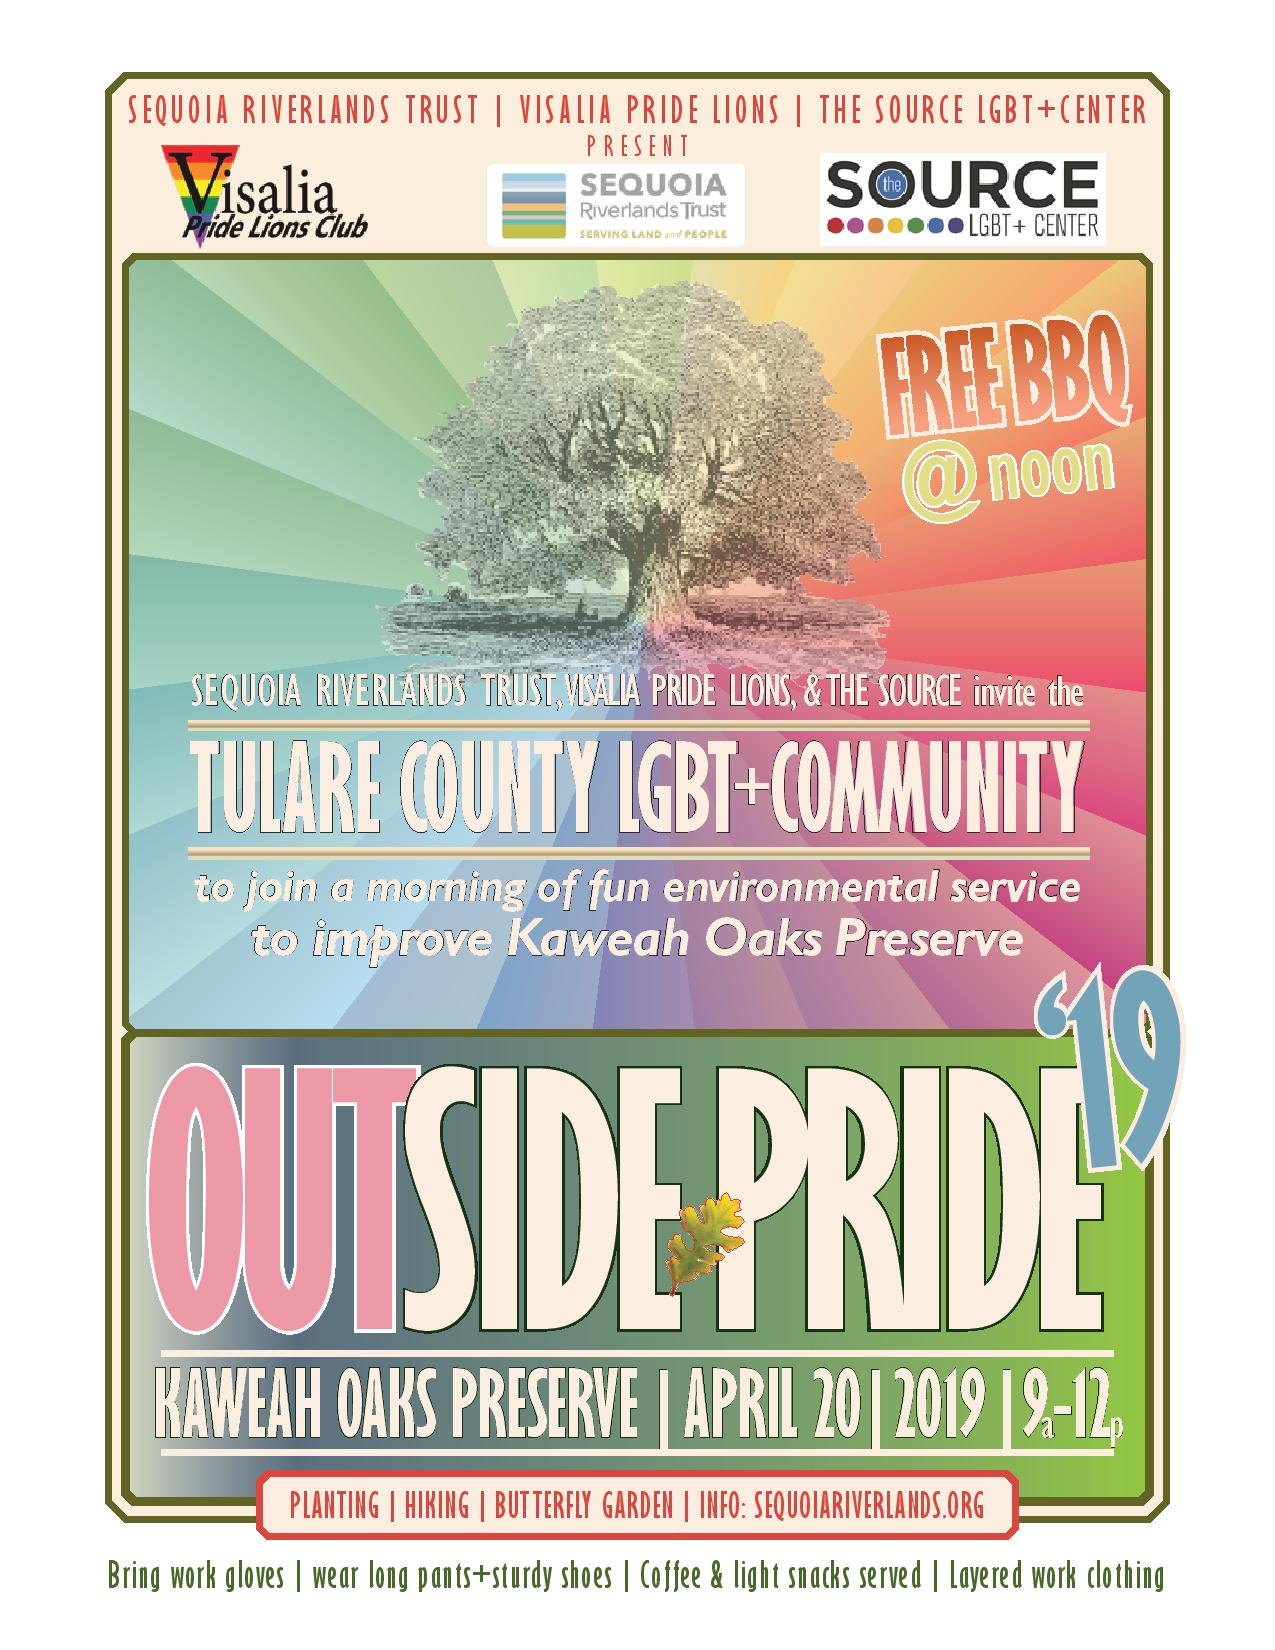 OUTside Pride '19 this Saturday at Kaweah Oaks